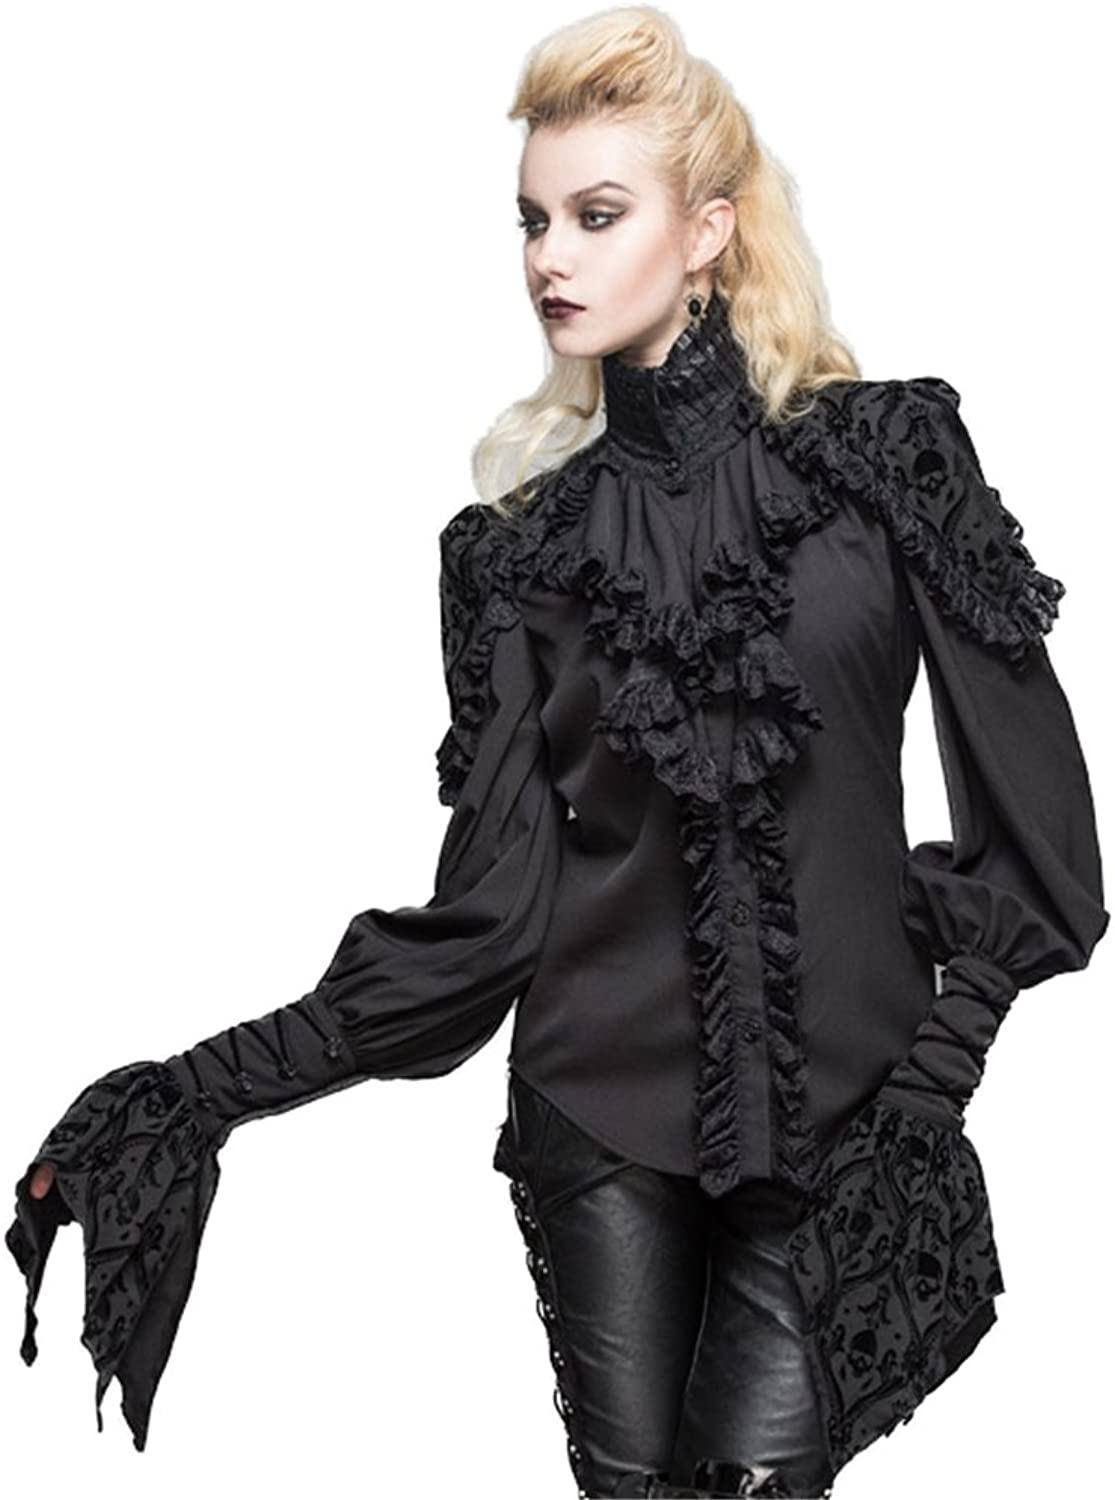 Devil fashion Gothic Womens Victorian Lace Shirts Blouse Stand Collar Steampunk Lolita Tops